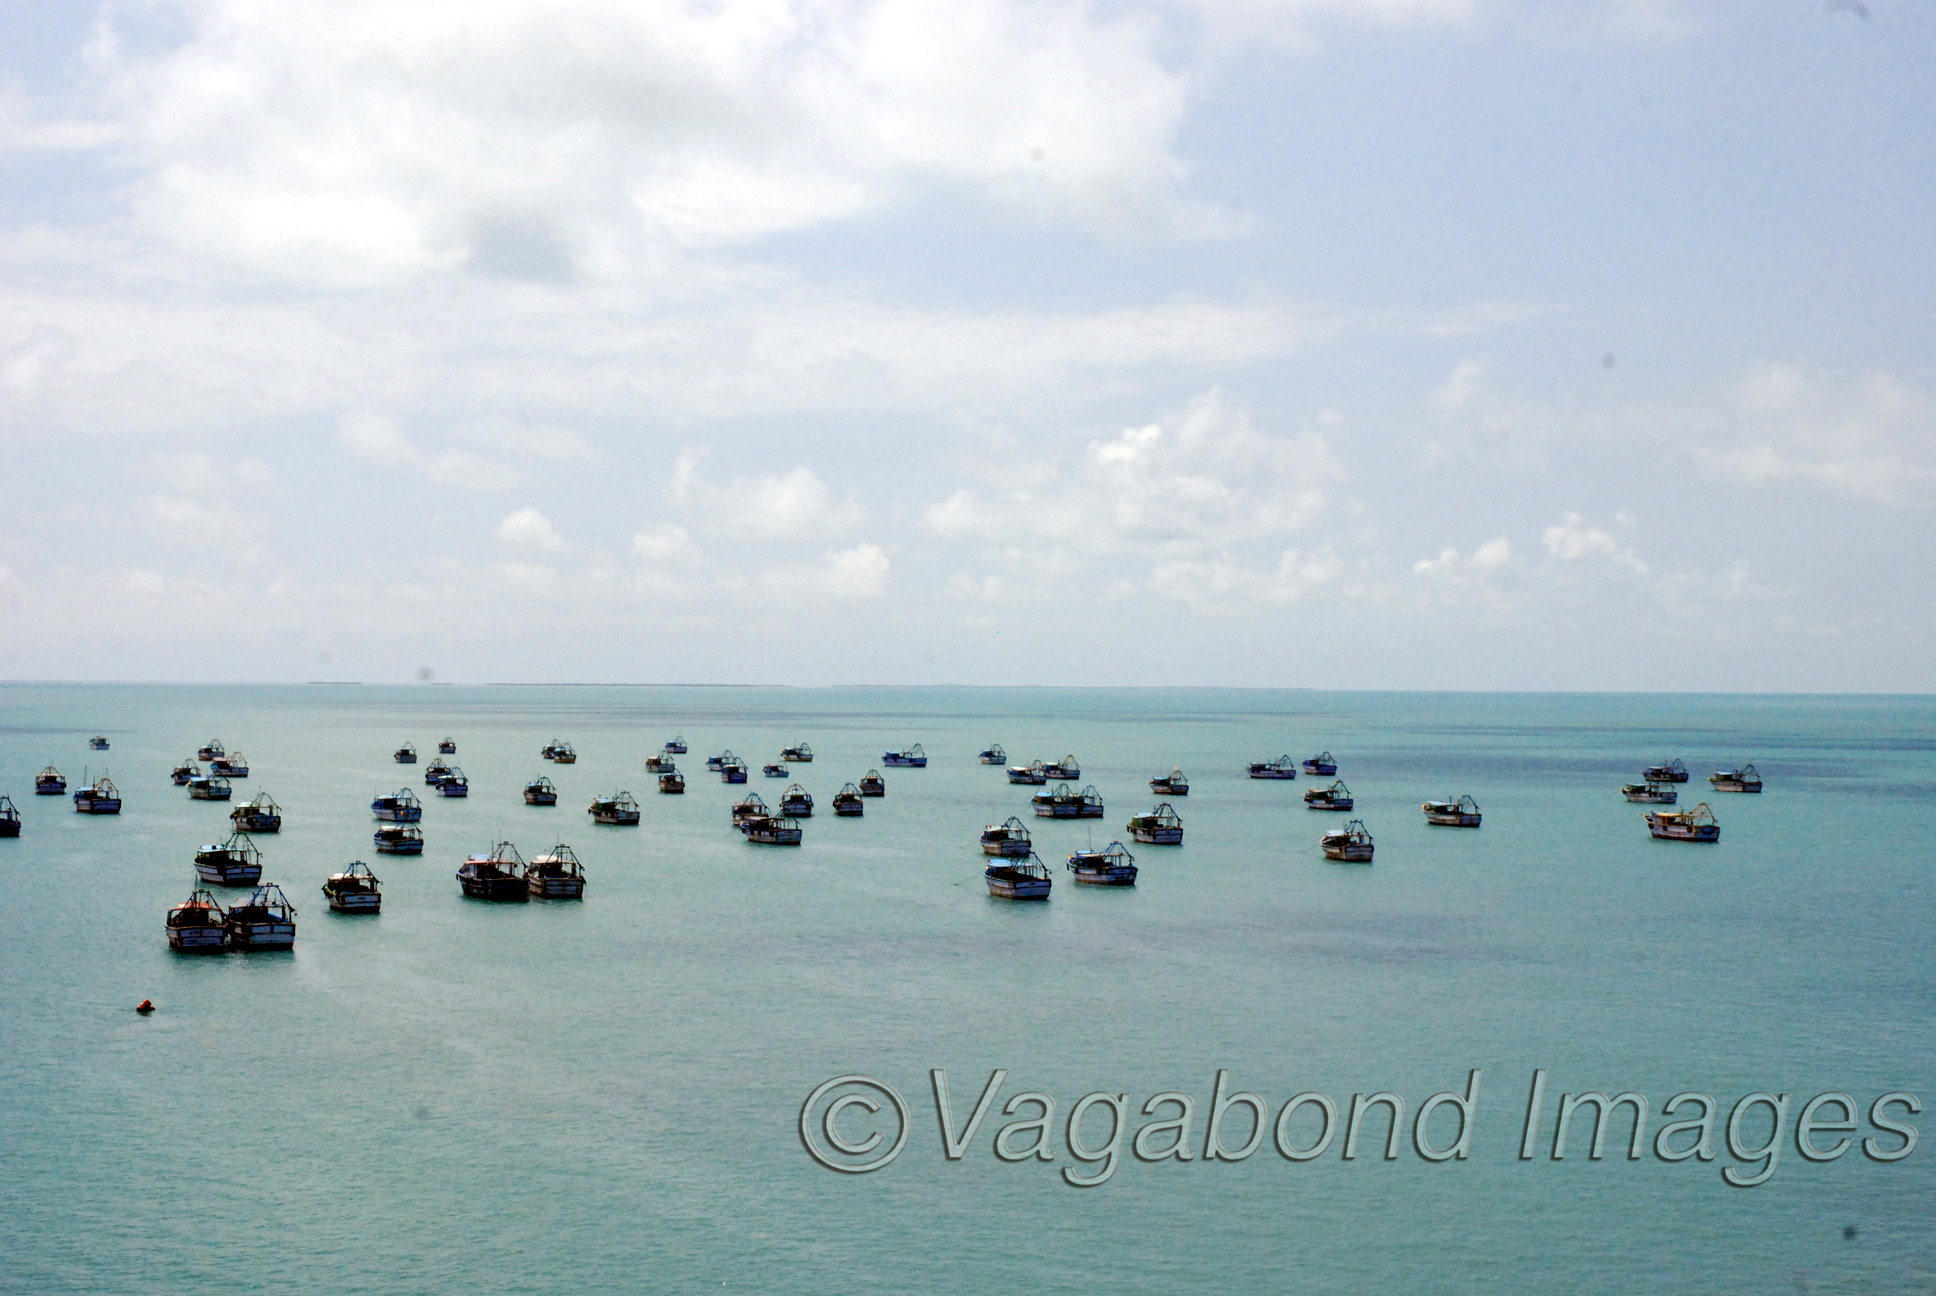 Fishermen boats in the Pamban Bay close to Palk Strait as seen from Pamban bridge